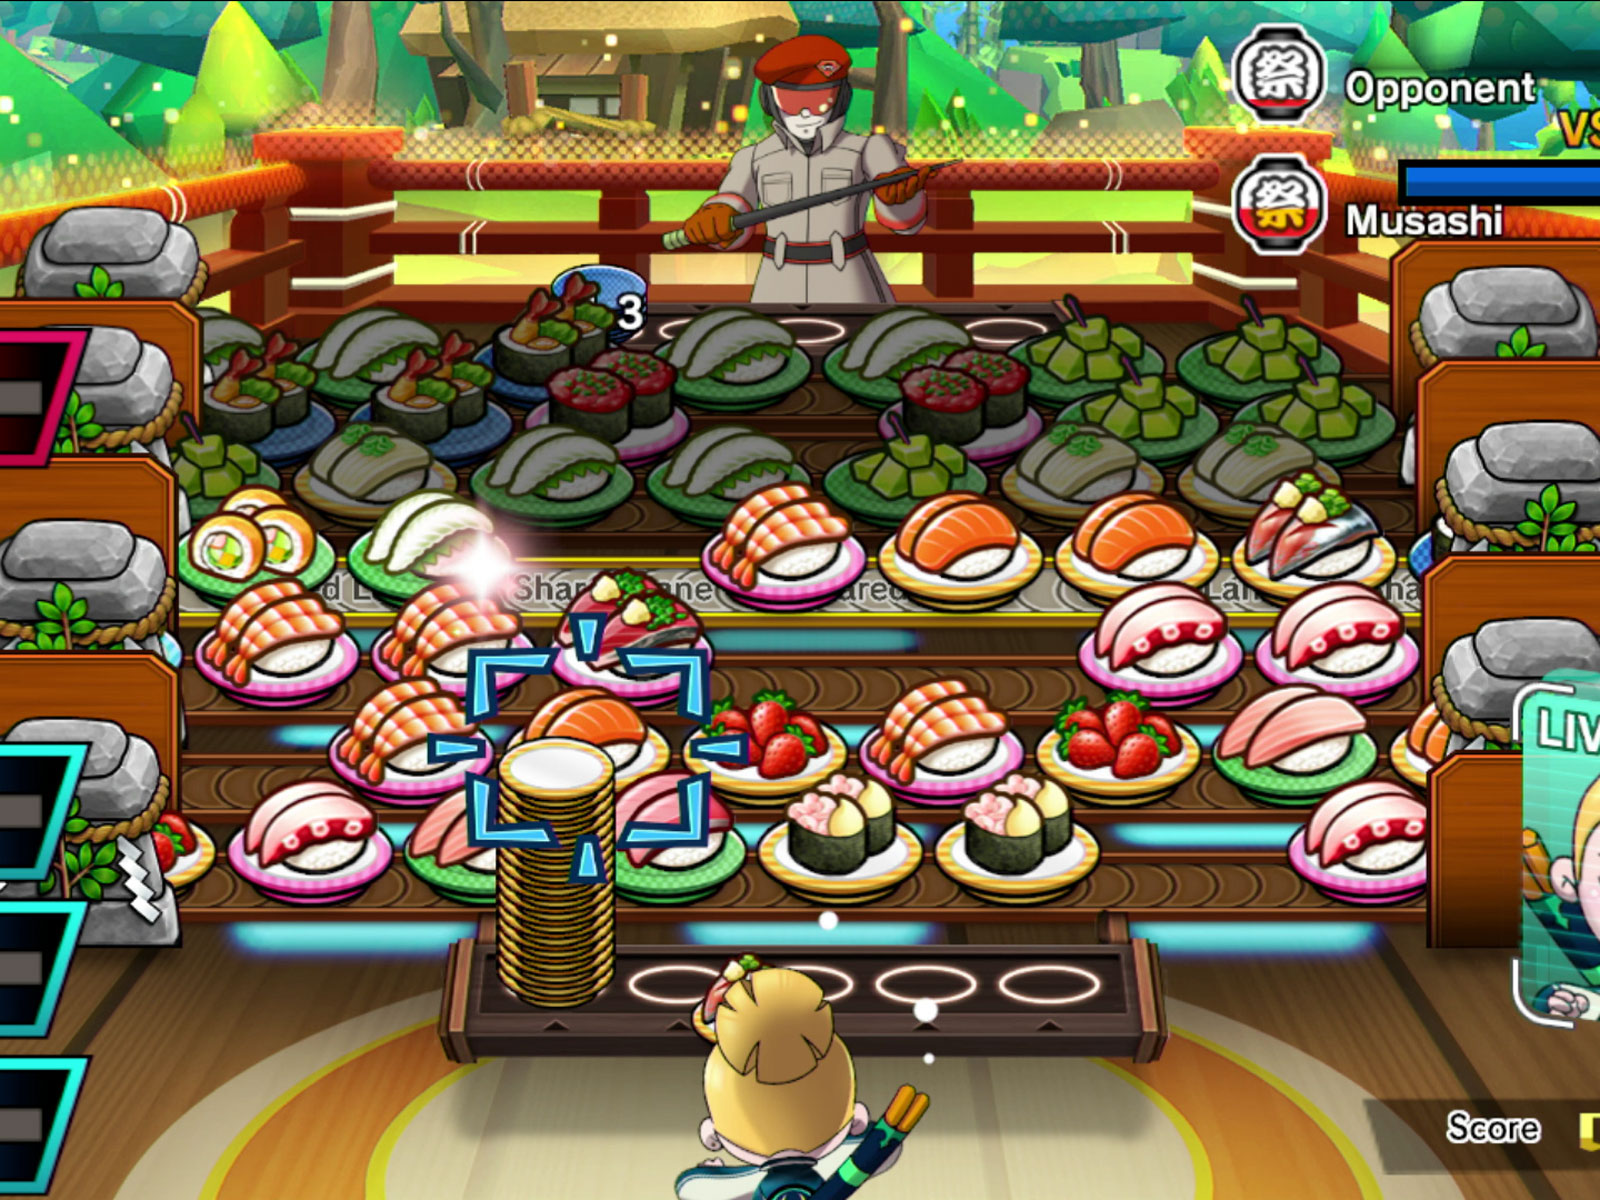 sushi-striker-nintendo-FT-BLOG0518.jpg